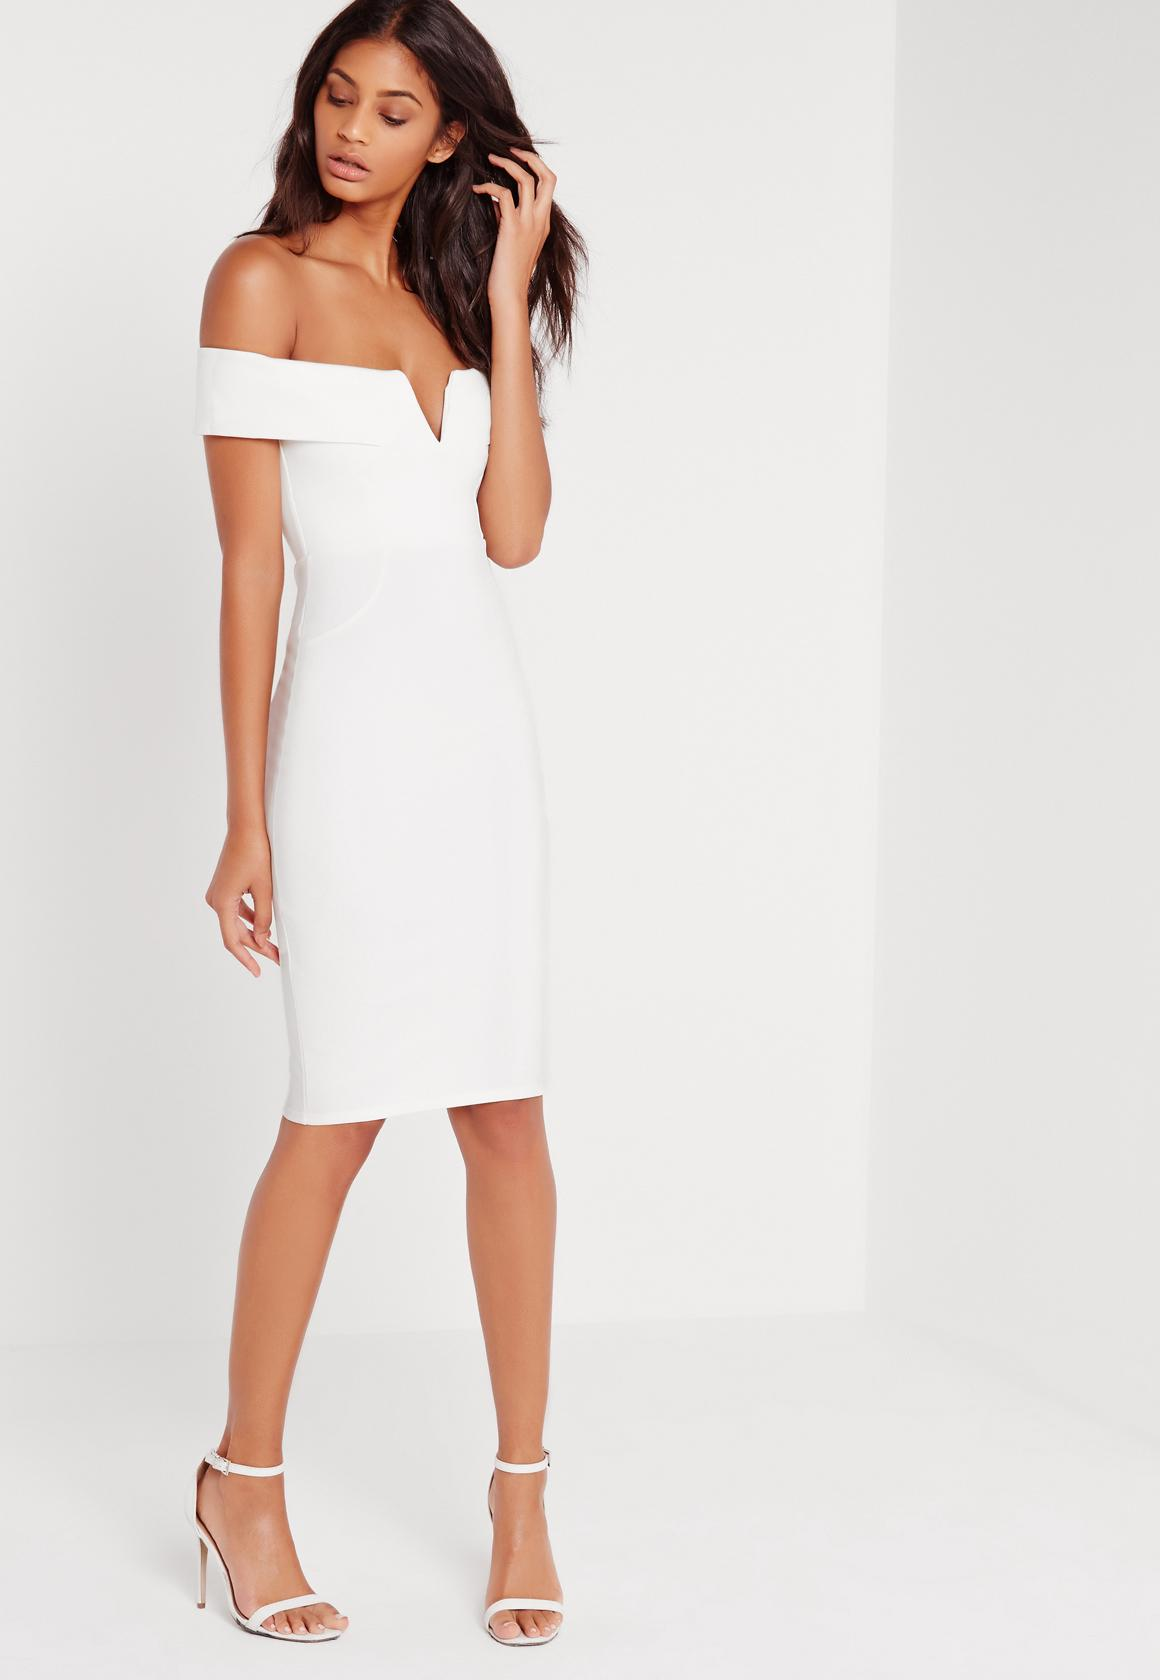 White Dresses | Cream & Ivory Dresses - Missguided